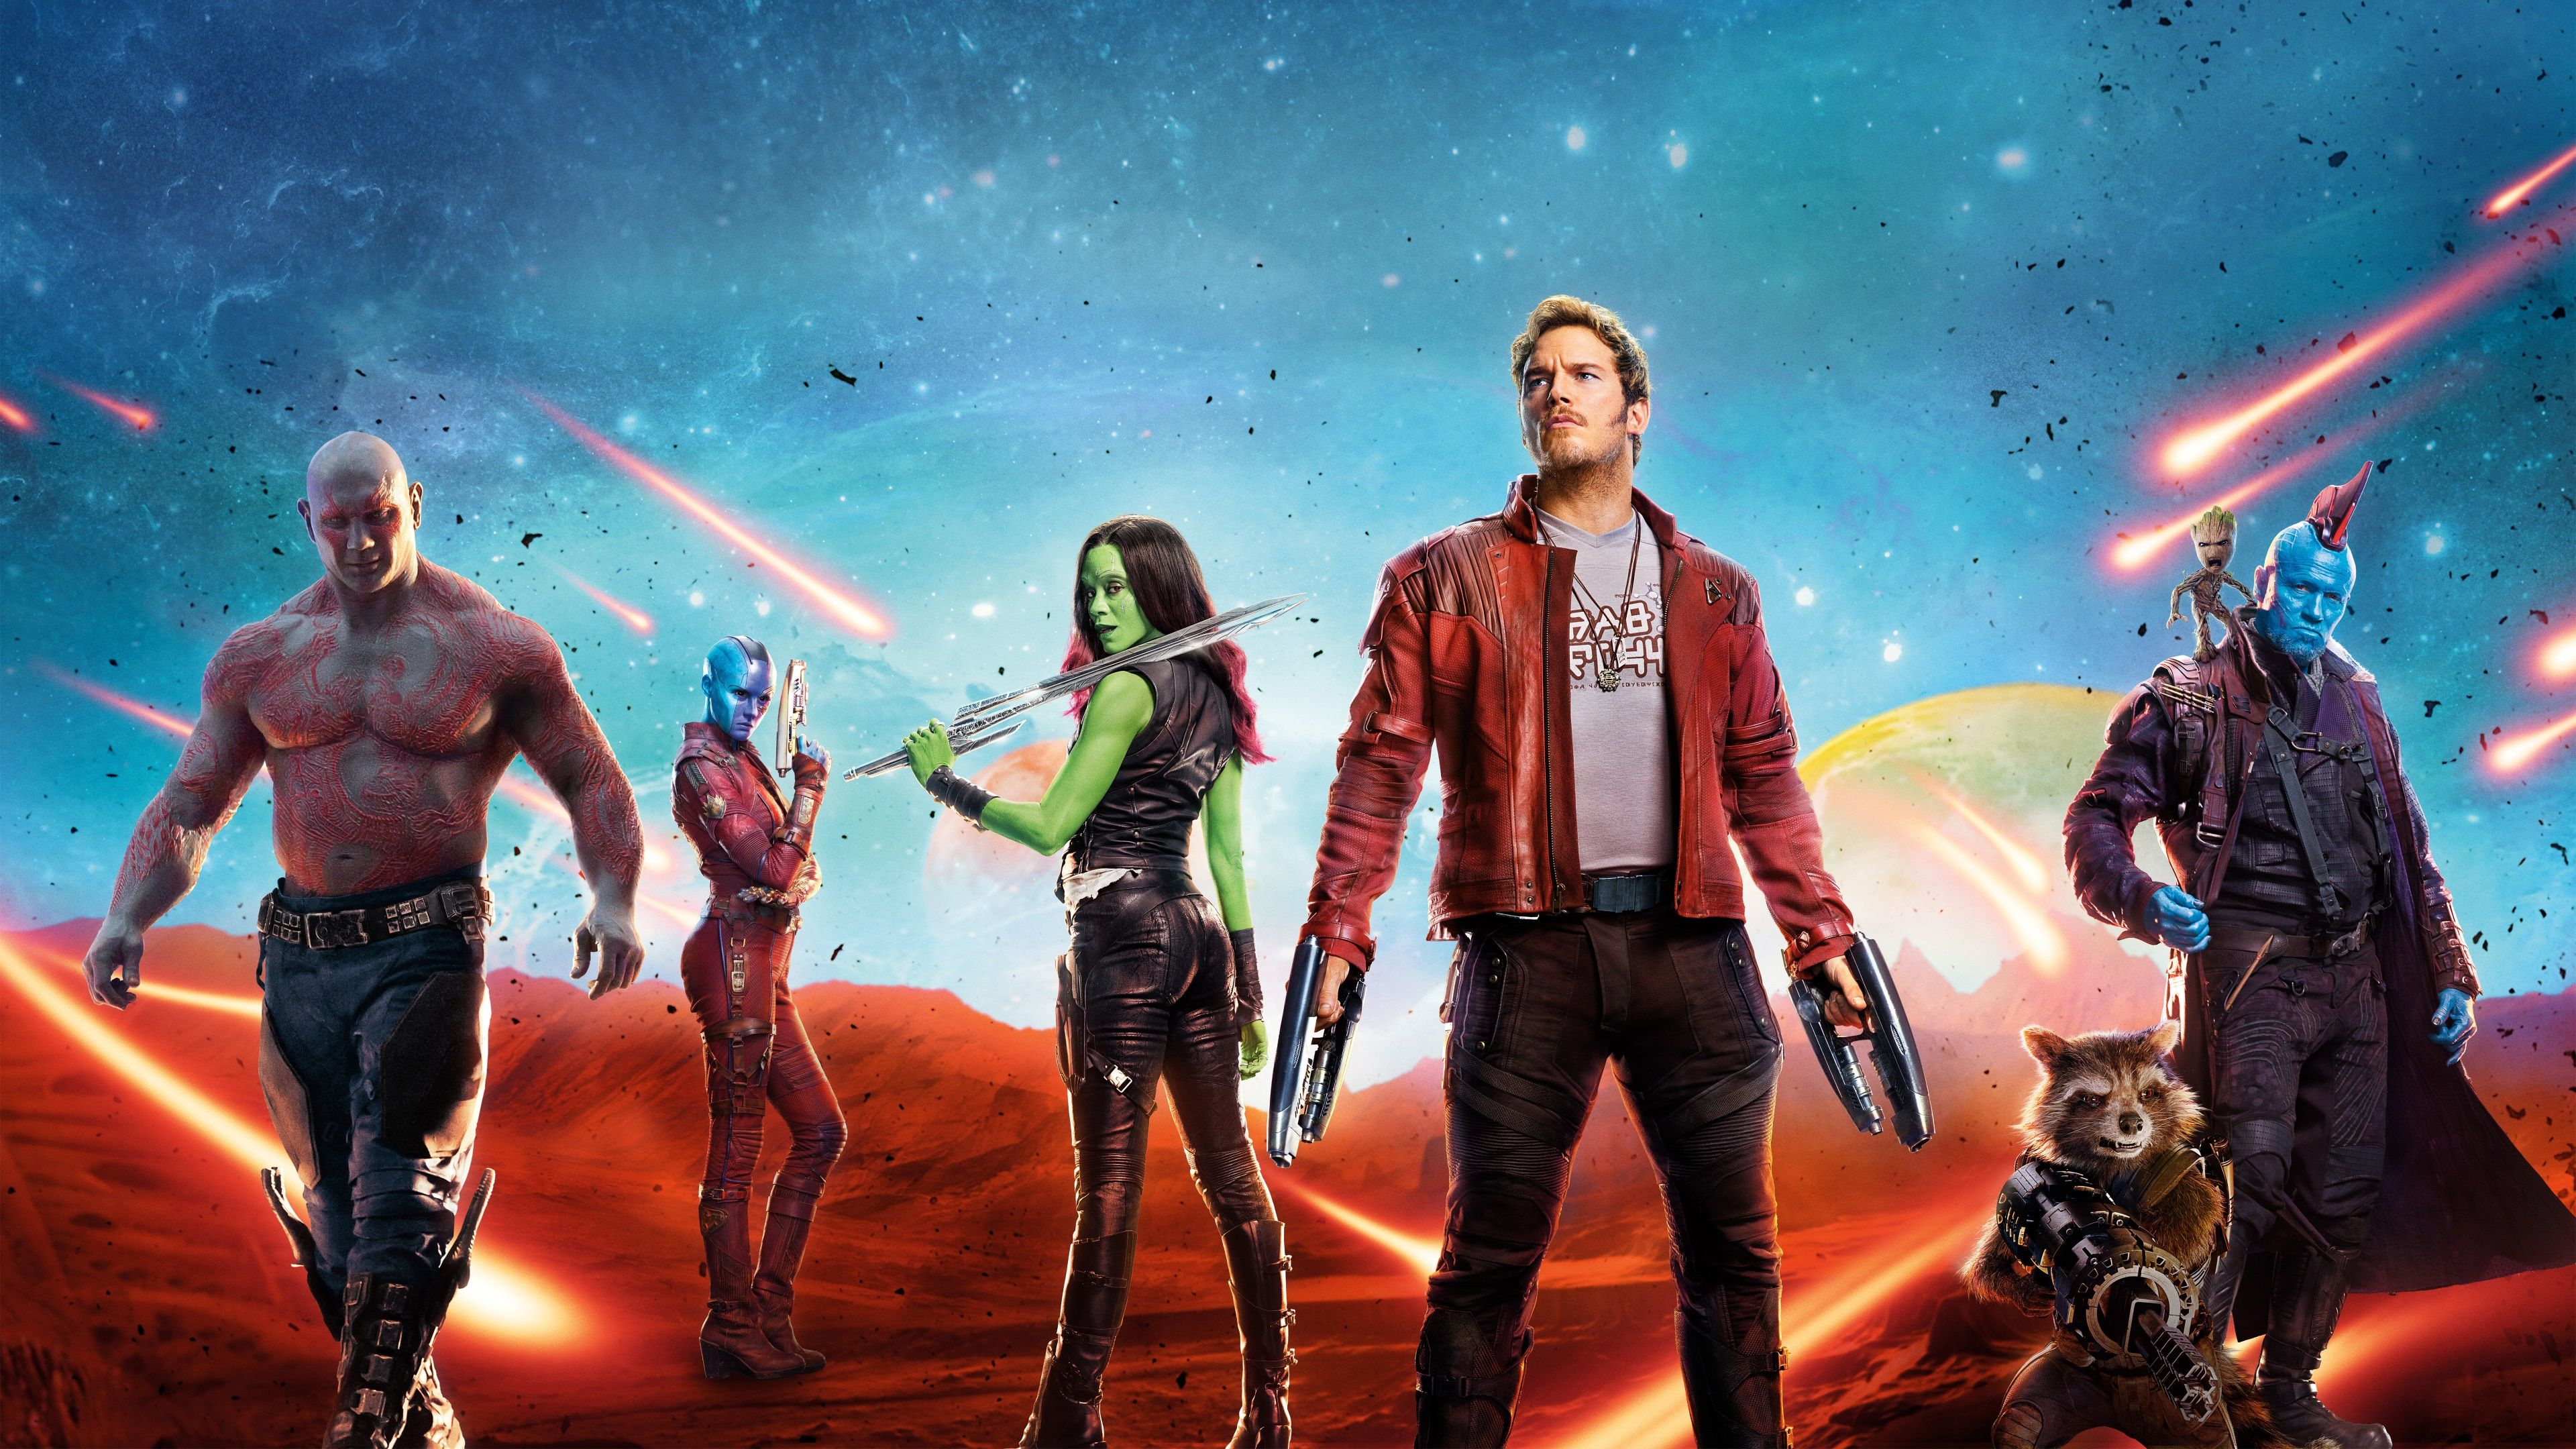 3840x2160 Guardians Of The Galaxy Vol 2 4k Wallpaper Hd Top With